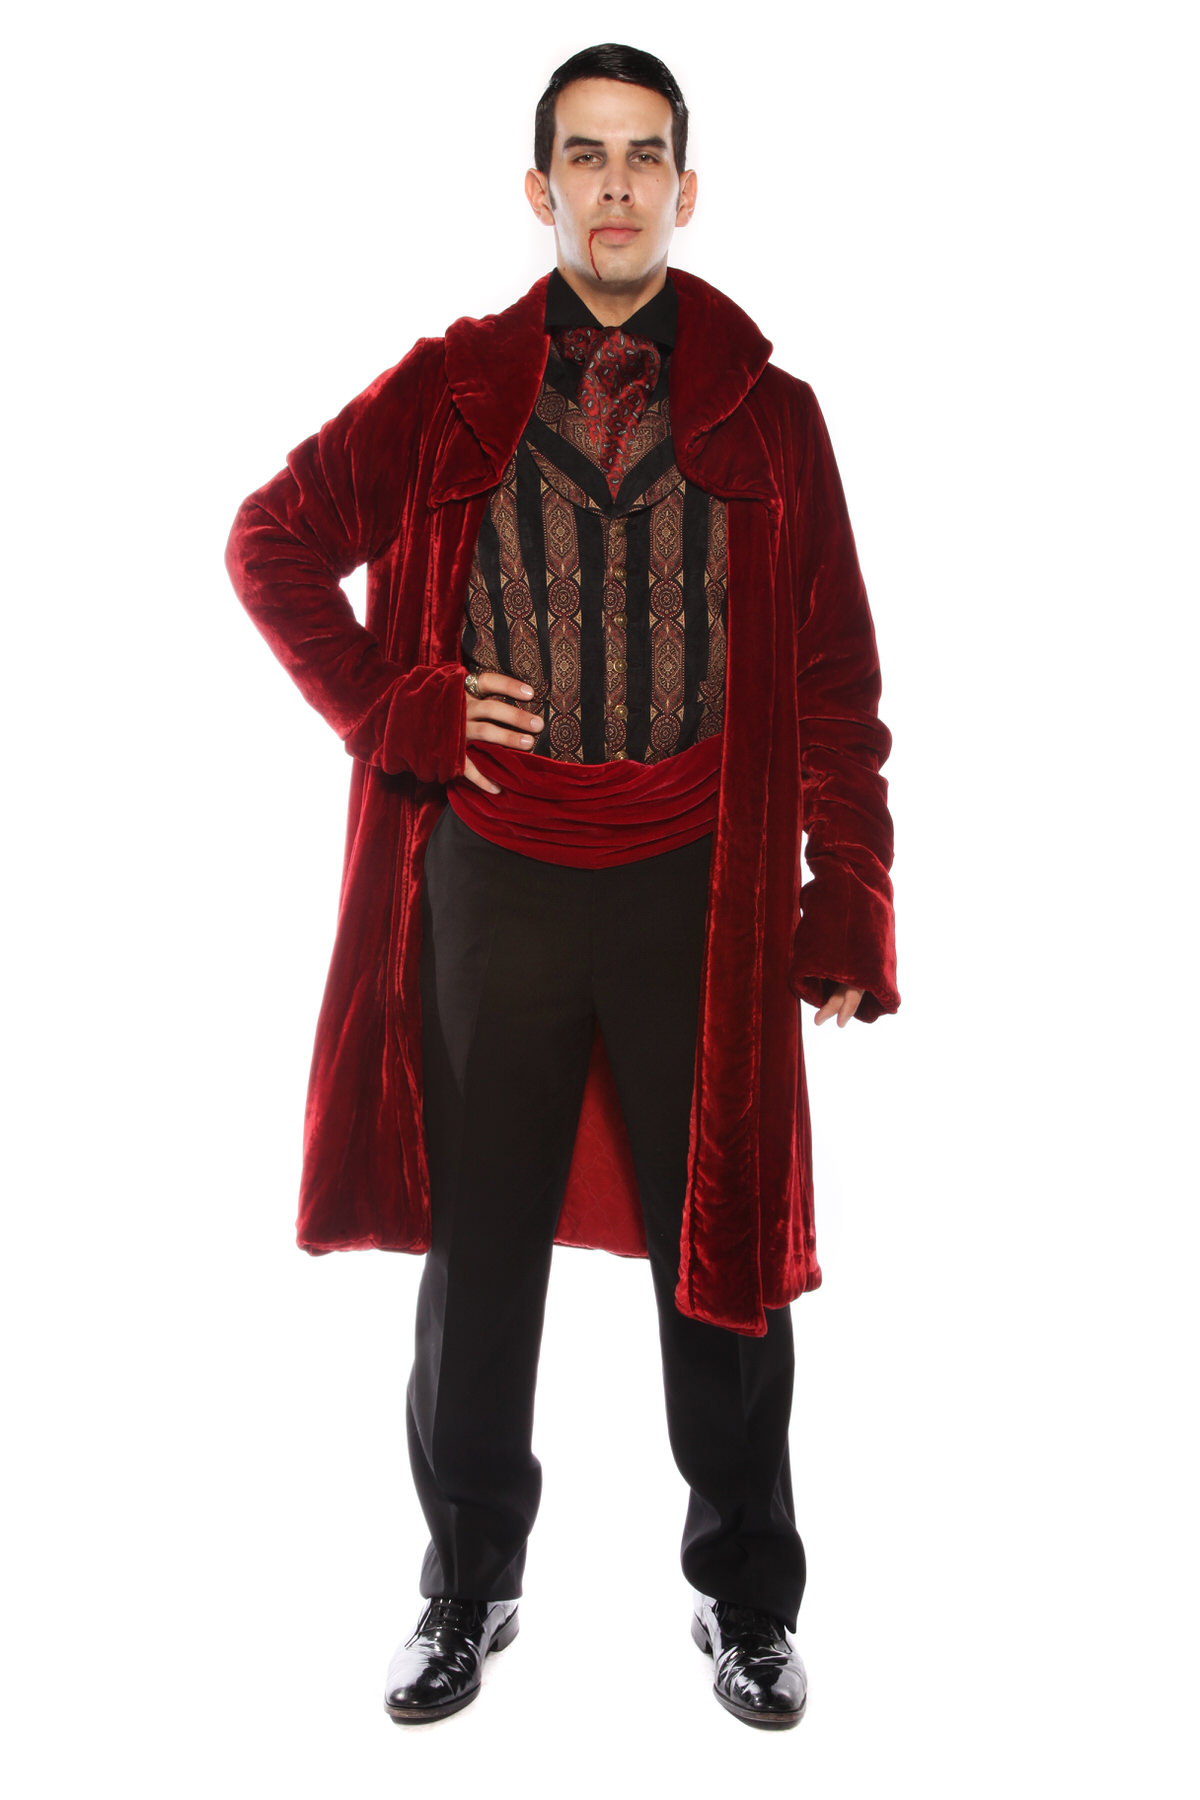 SUPER DELUXE VAMPIRE COUNT COSTUME WITH RED SASH